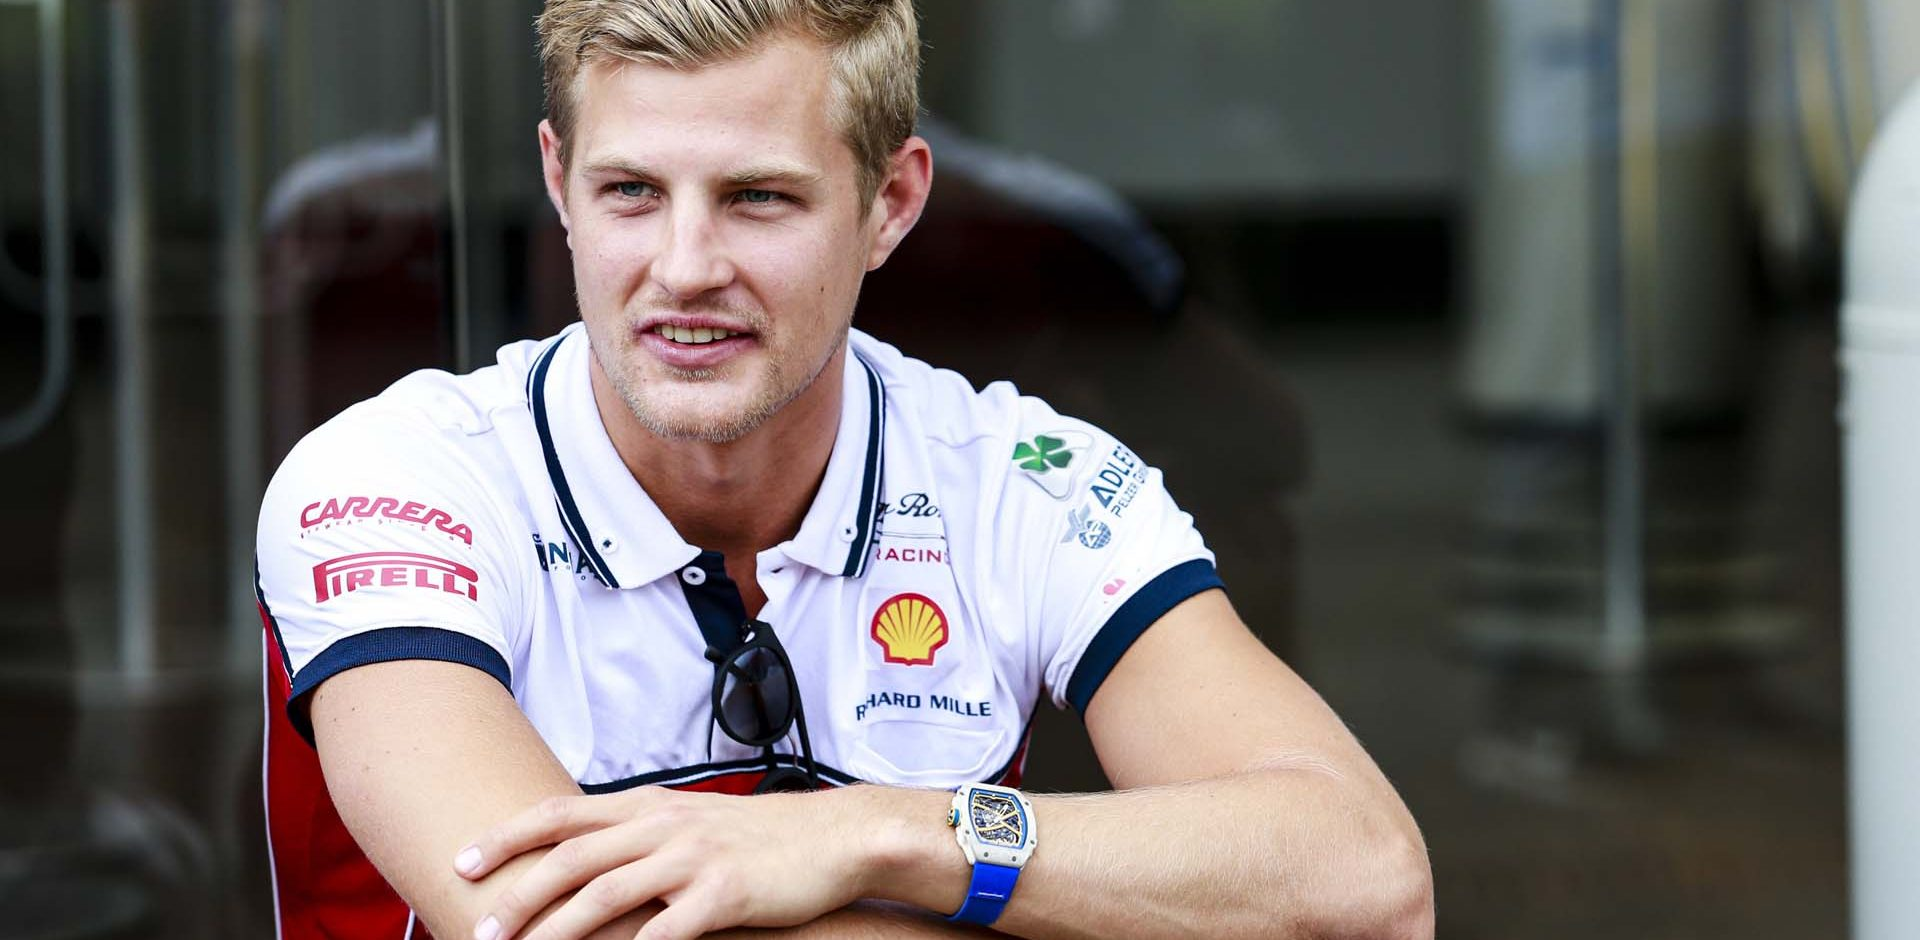 ERICSSON Marcus (swe), Reserve Driver of Alfa Romeo Racing, portrait during the 2019 Formula One World Championship, Belgium Grand Prix from August 29 to september 1 in Spa -Francorchamps, Belgium - Photo Xavi Bonilla / DPPI